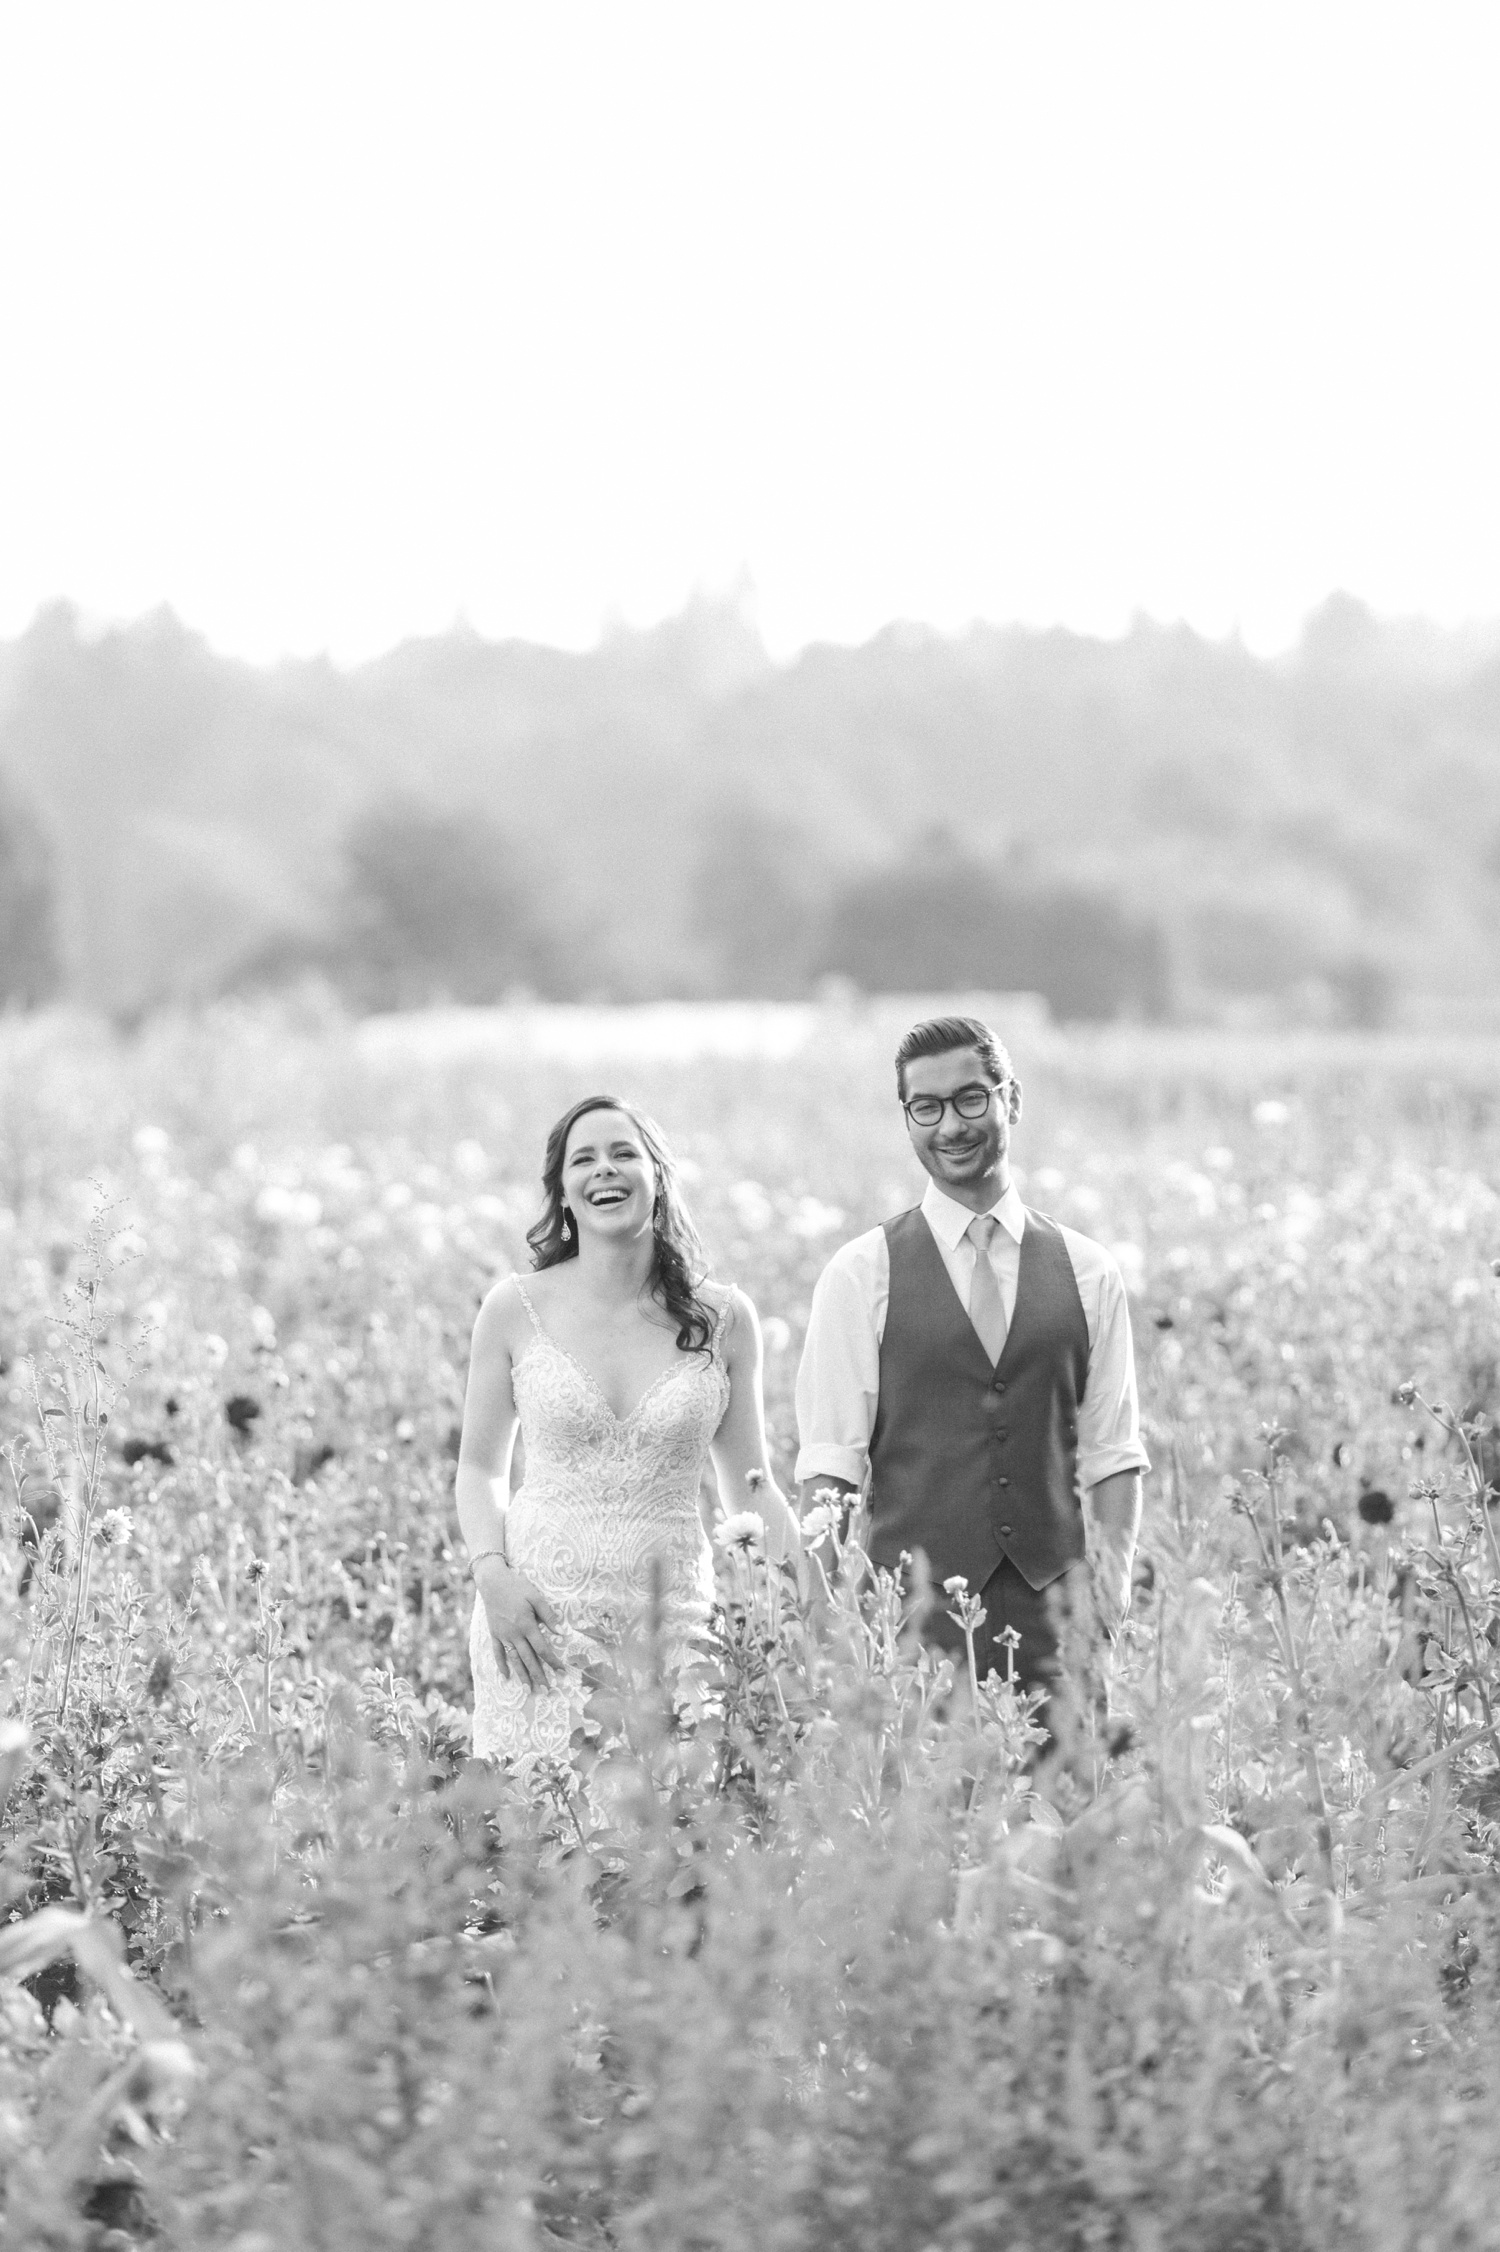 A black-and-white photo of a bride and groom laughing while standing in a field of flowers before their wedding atWoodland Meadow Farms in Snohomish, a wedding venue near Seattle, WA. | Joanna Monger Photography | Seattle & Snohomish Photographer